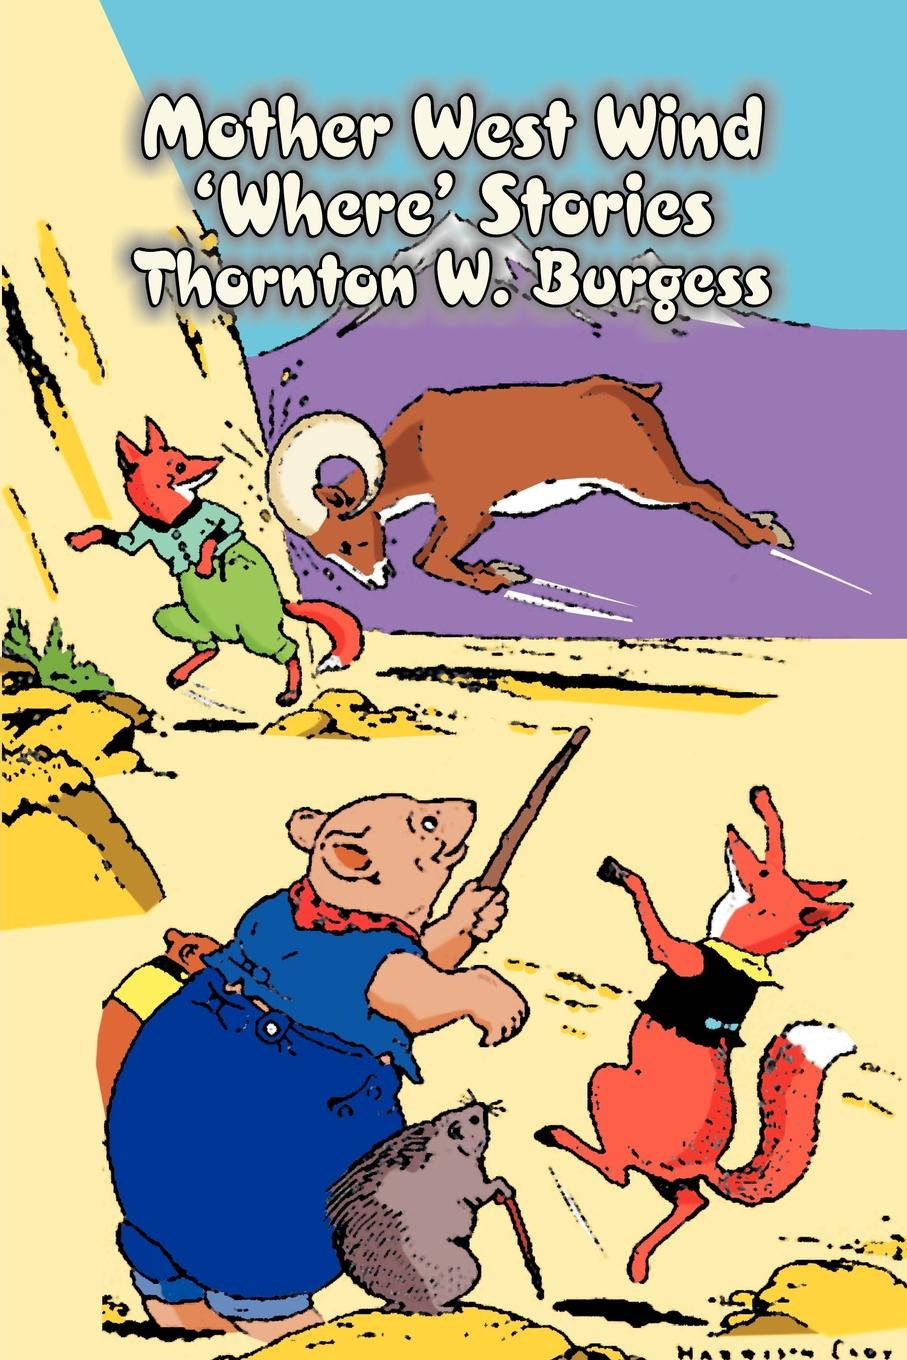 Thornton W. Burgess Mother West Wind 'Where' Stories by Thornton Burgess, Fiction, Animals, Fantasy & Magic